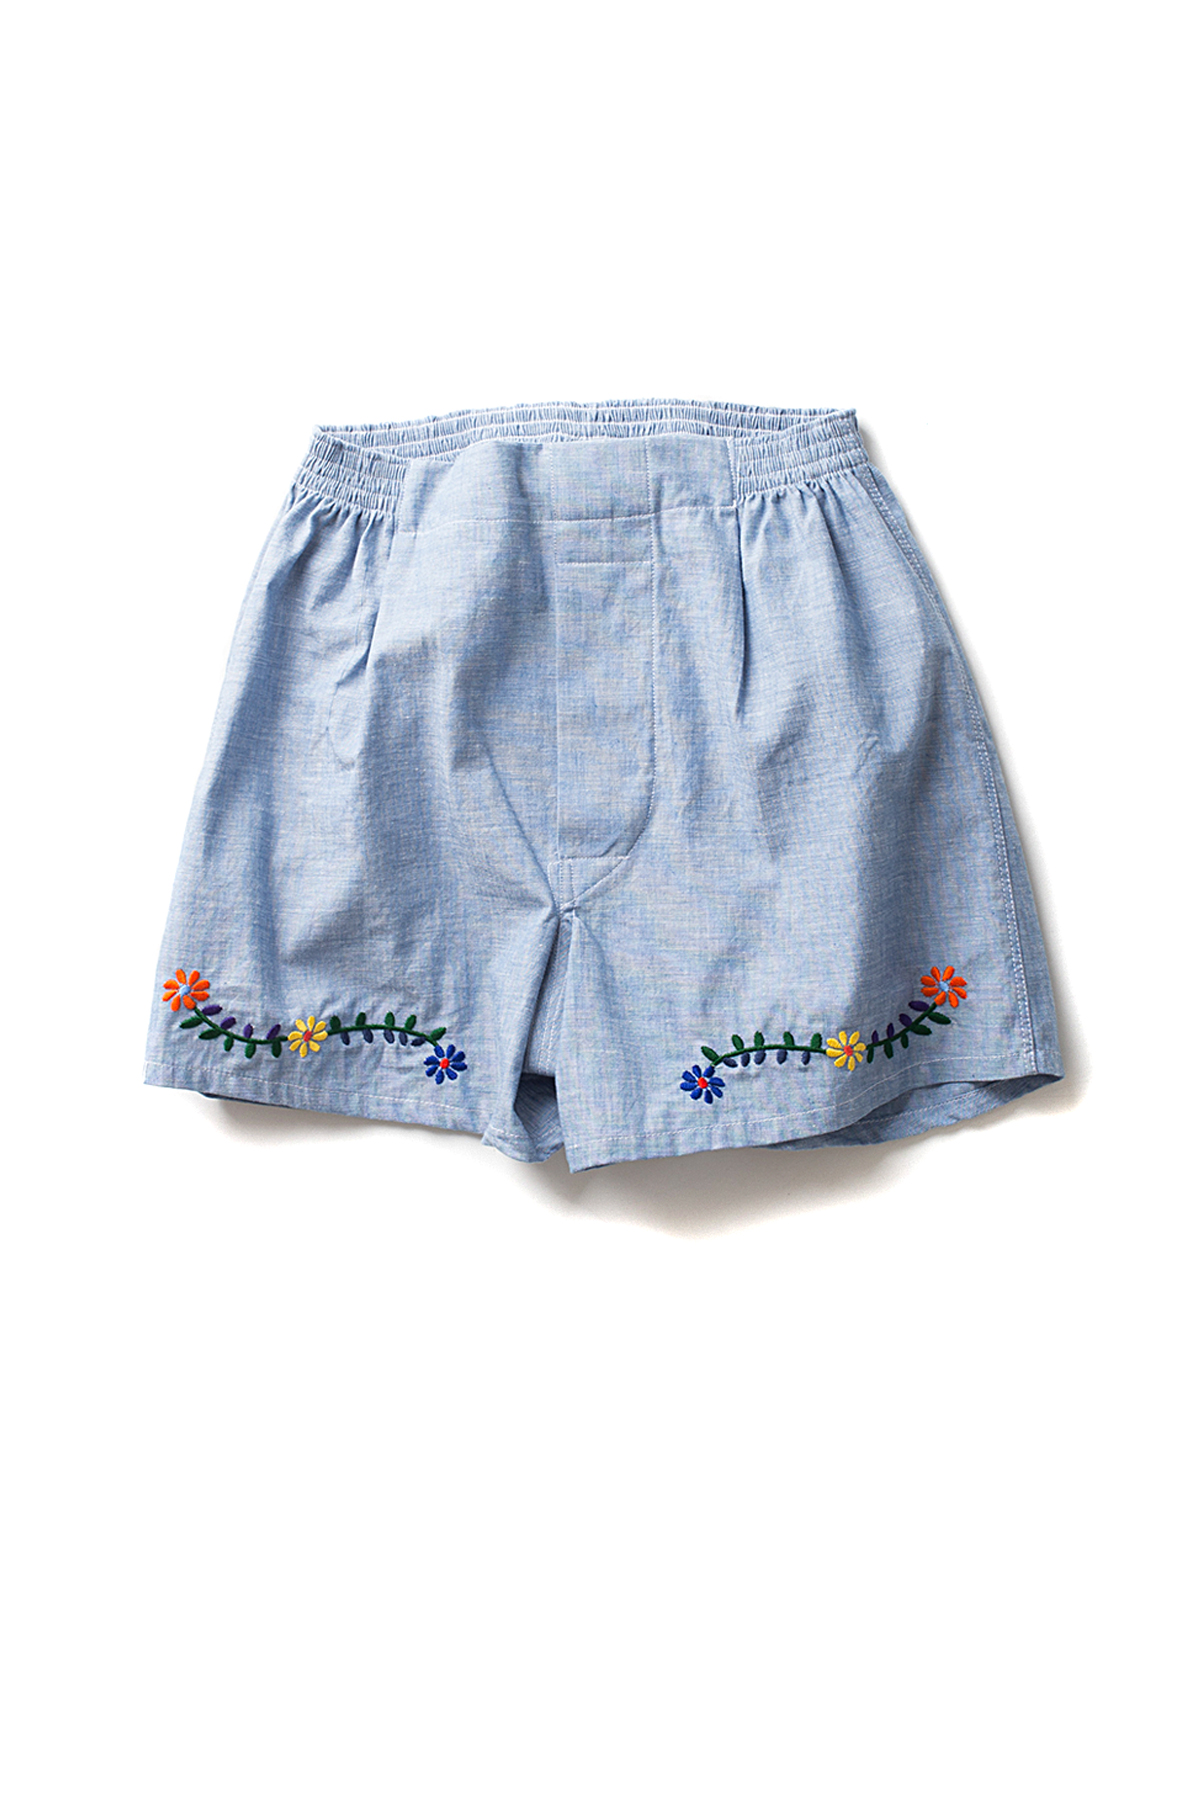 NAPALS : Chambray Box Trunks (Blue)